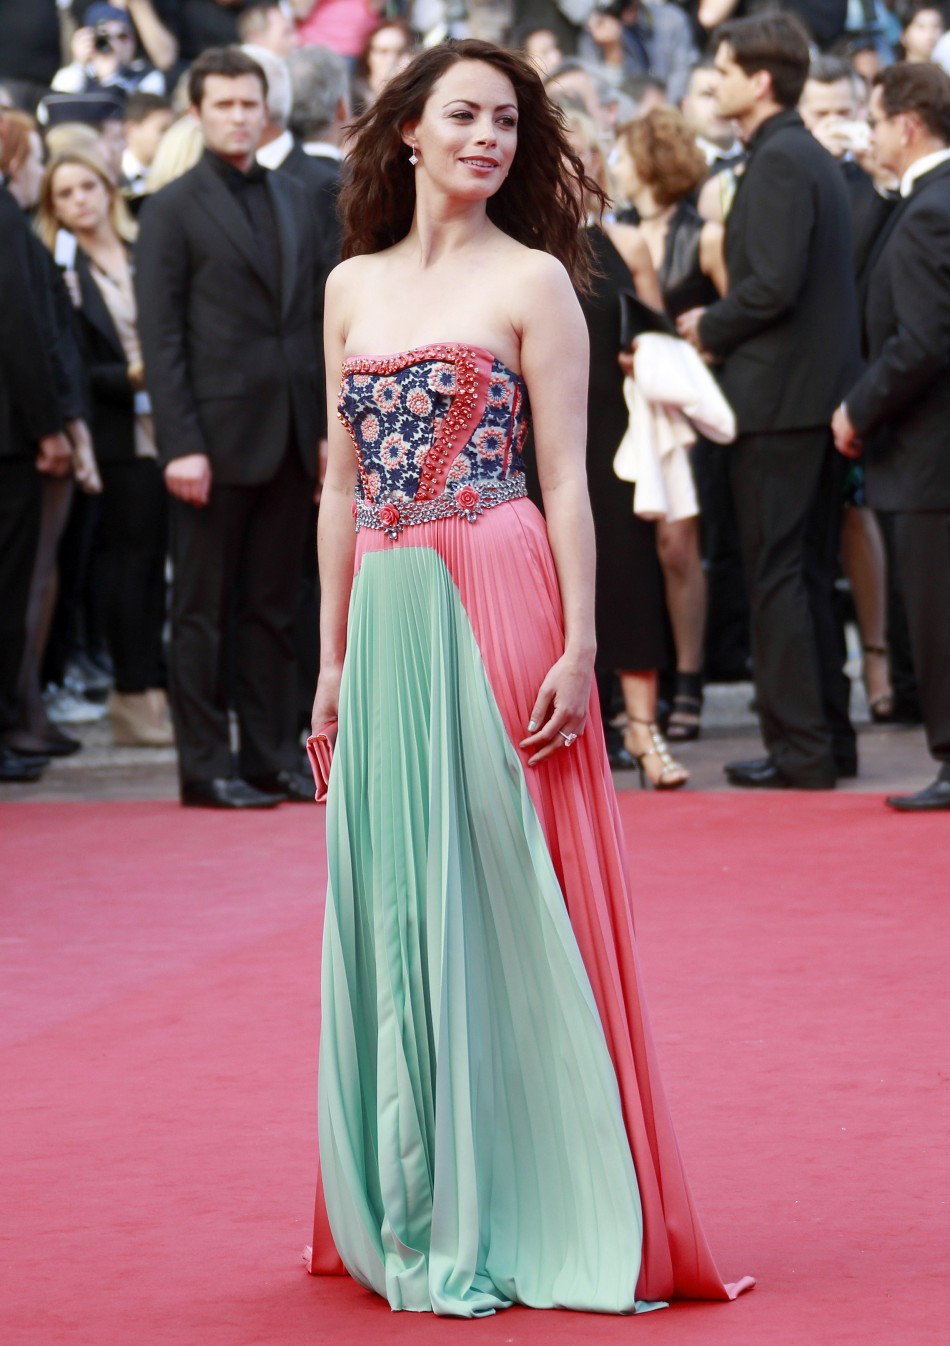 Mistress of ceremony of the 65th Cannes Film Festival Bejo arrives on the red carpet for the screening of the film Lawless at the 65th Cannes Film Festival